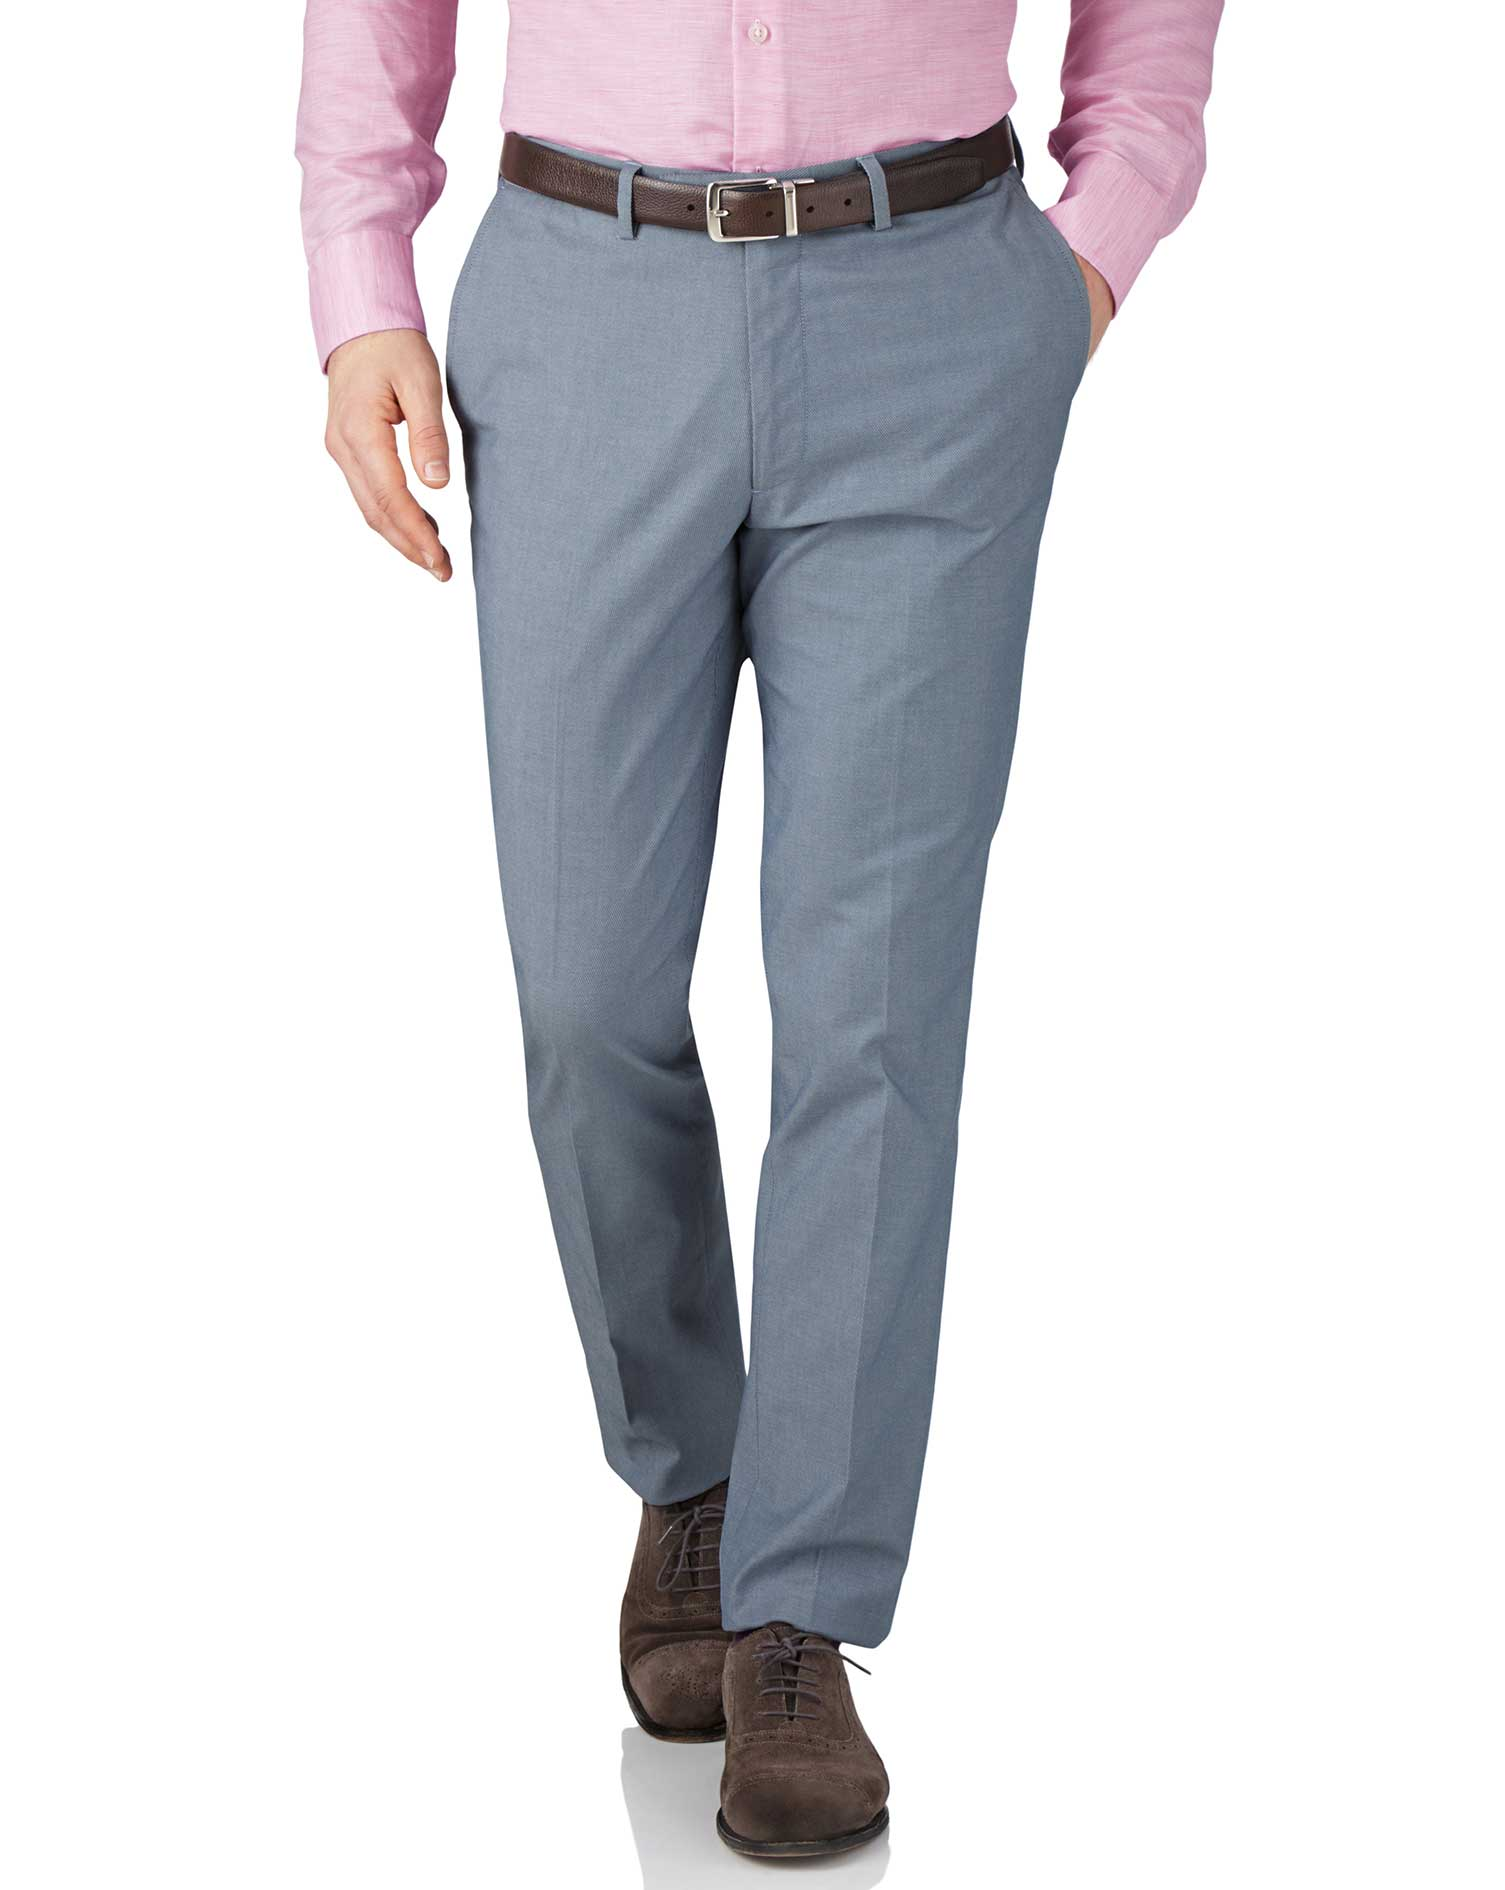 Blue Chambray Extra Slim Fit Stretch Cavalry Twill Trousers Size W38 L30 by Charles Tyrwhitt